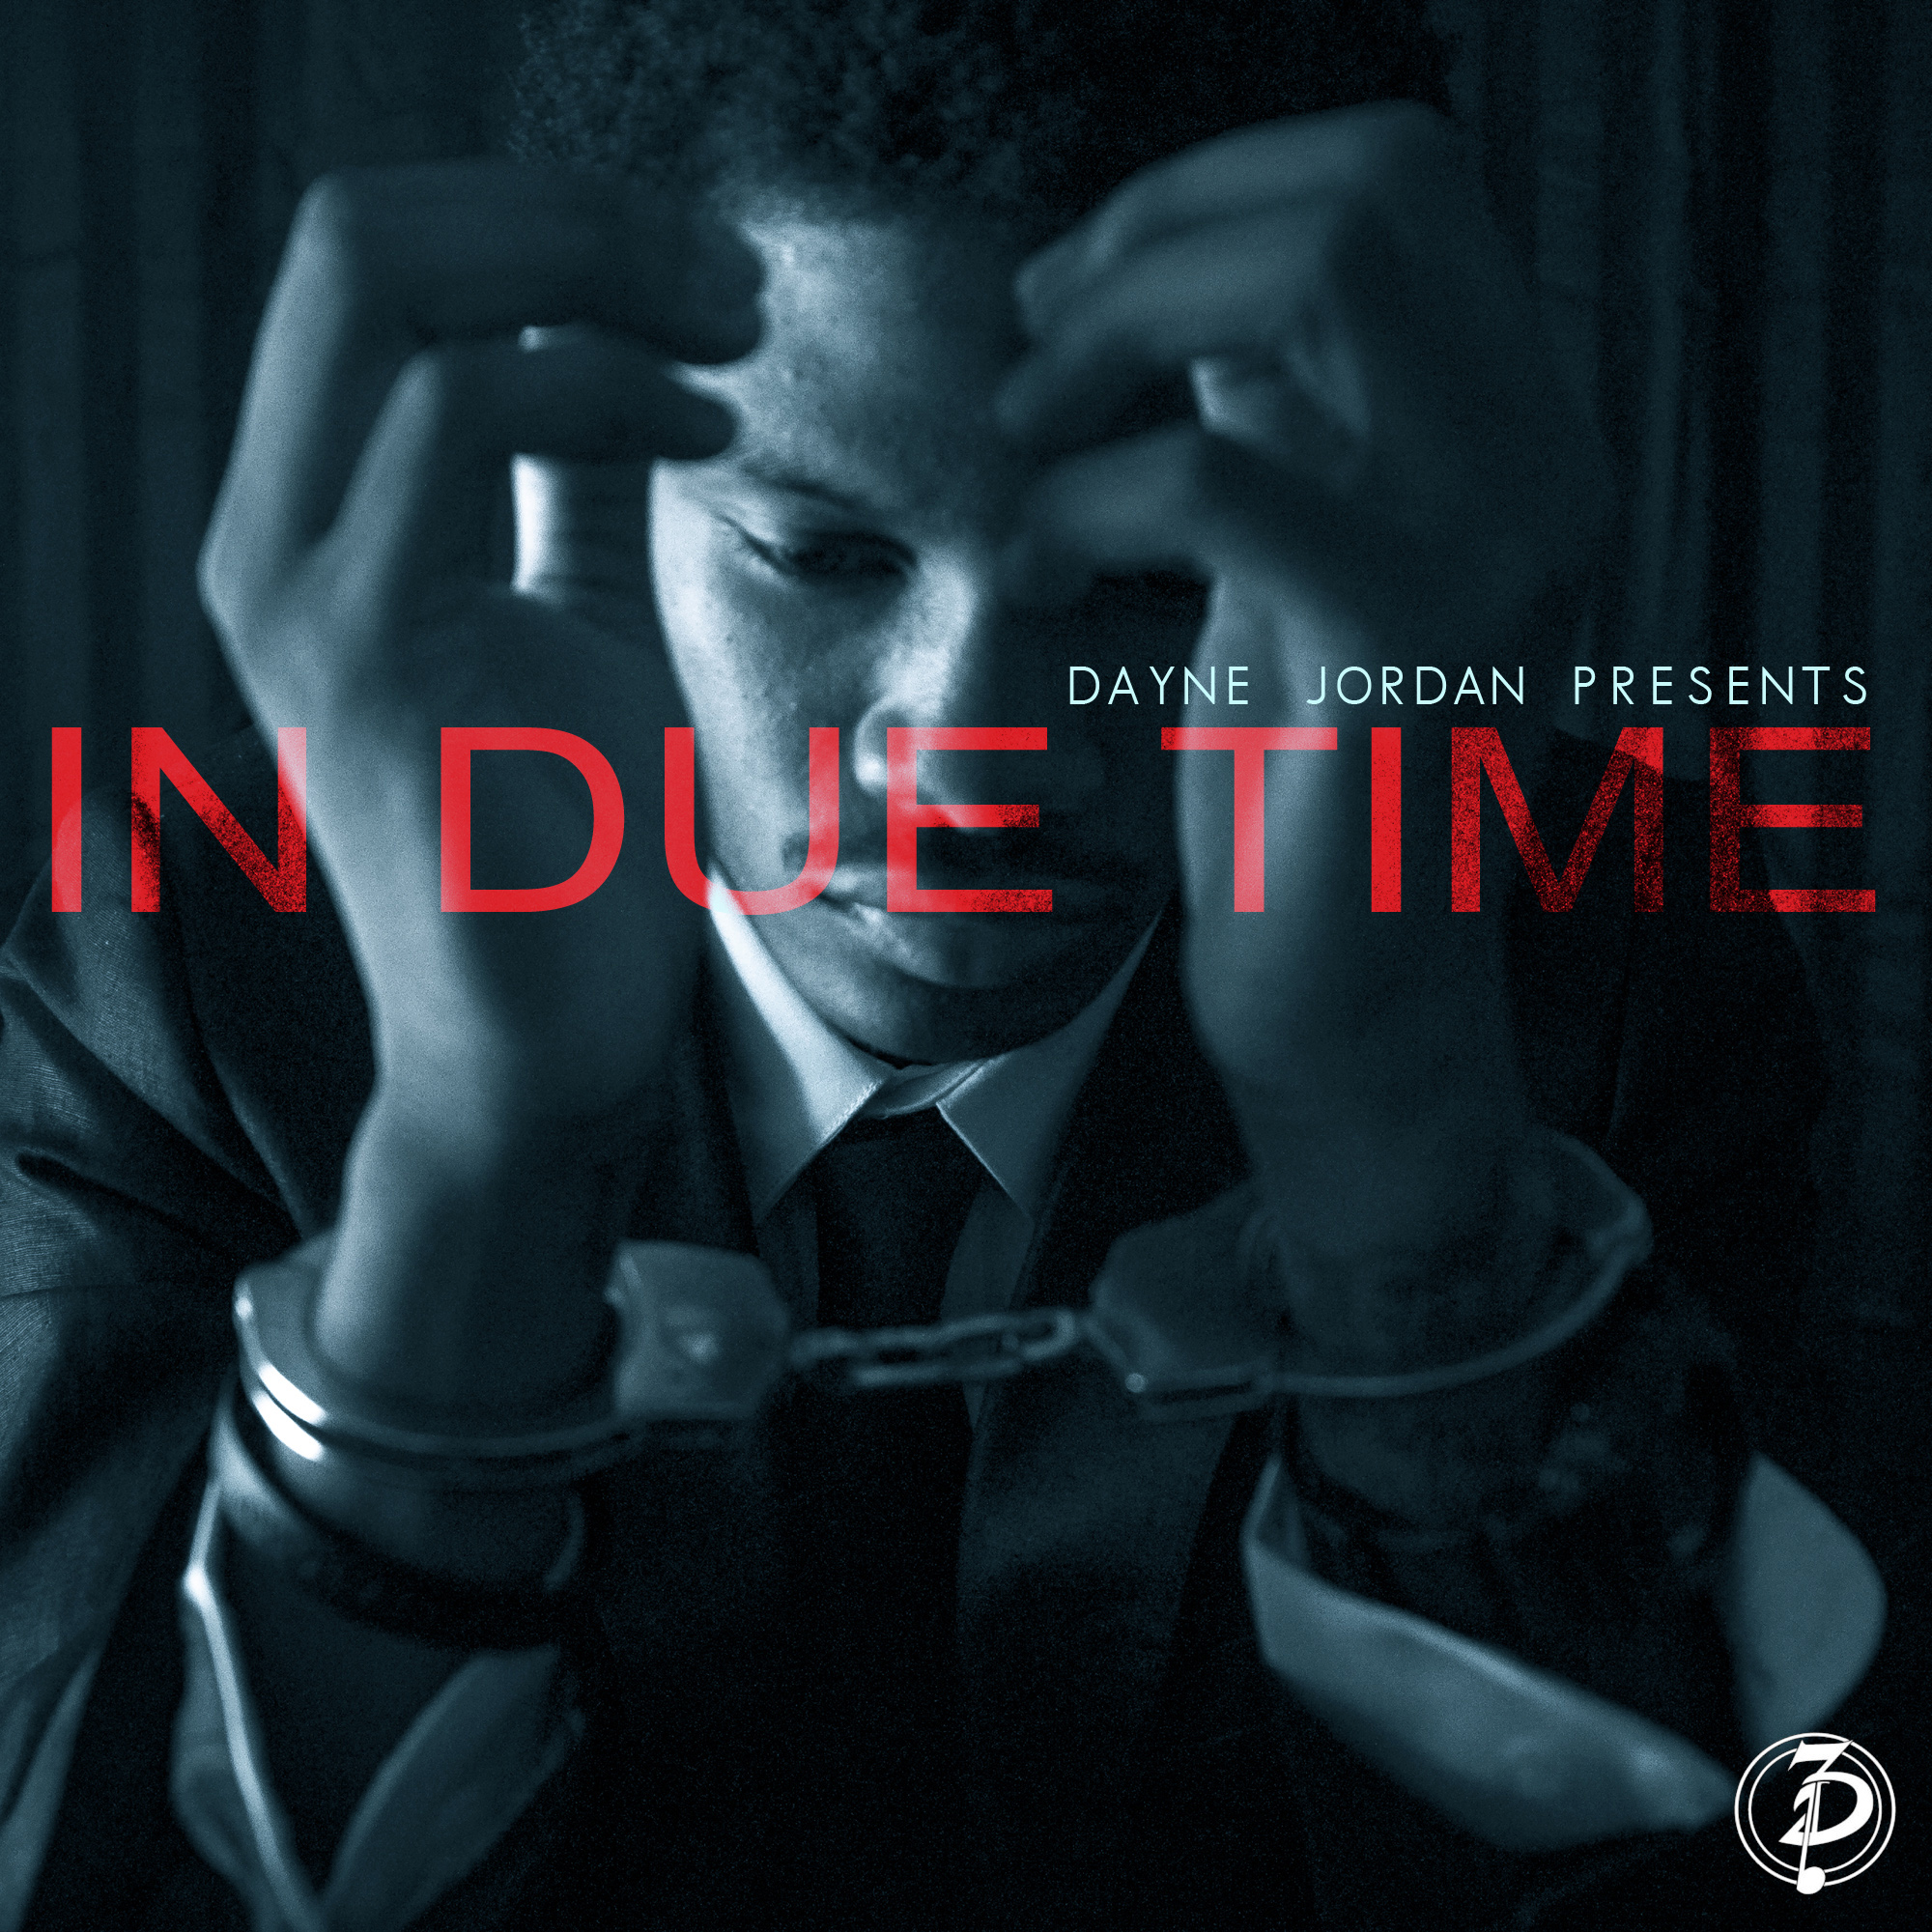 IN DUE TIME (cover art).jpg